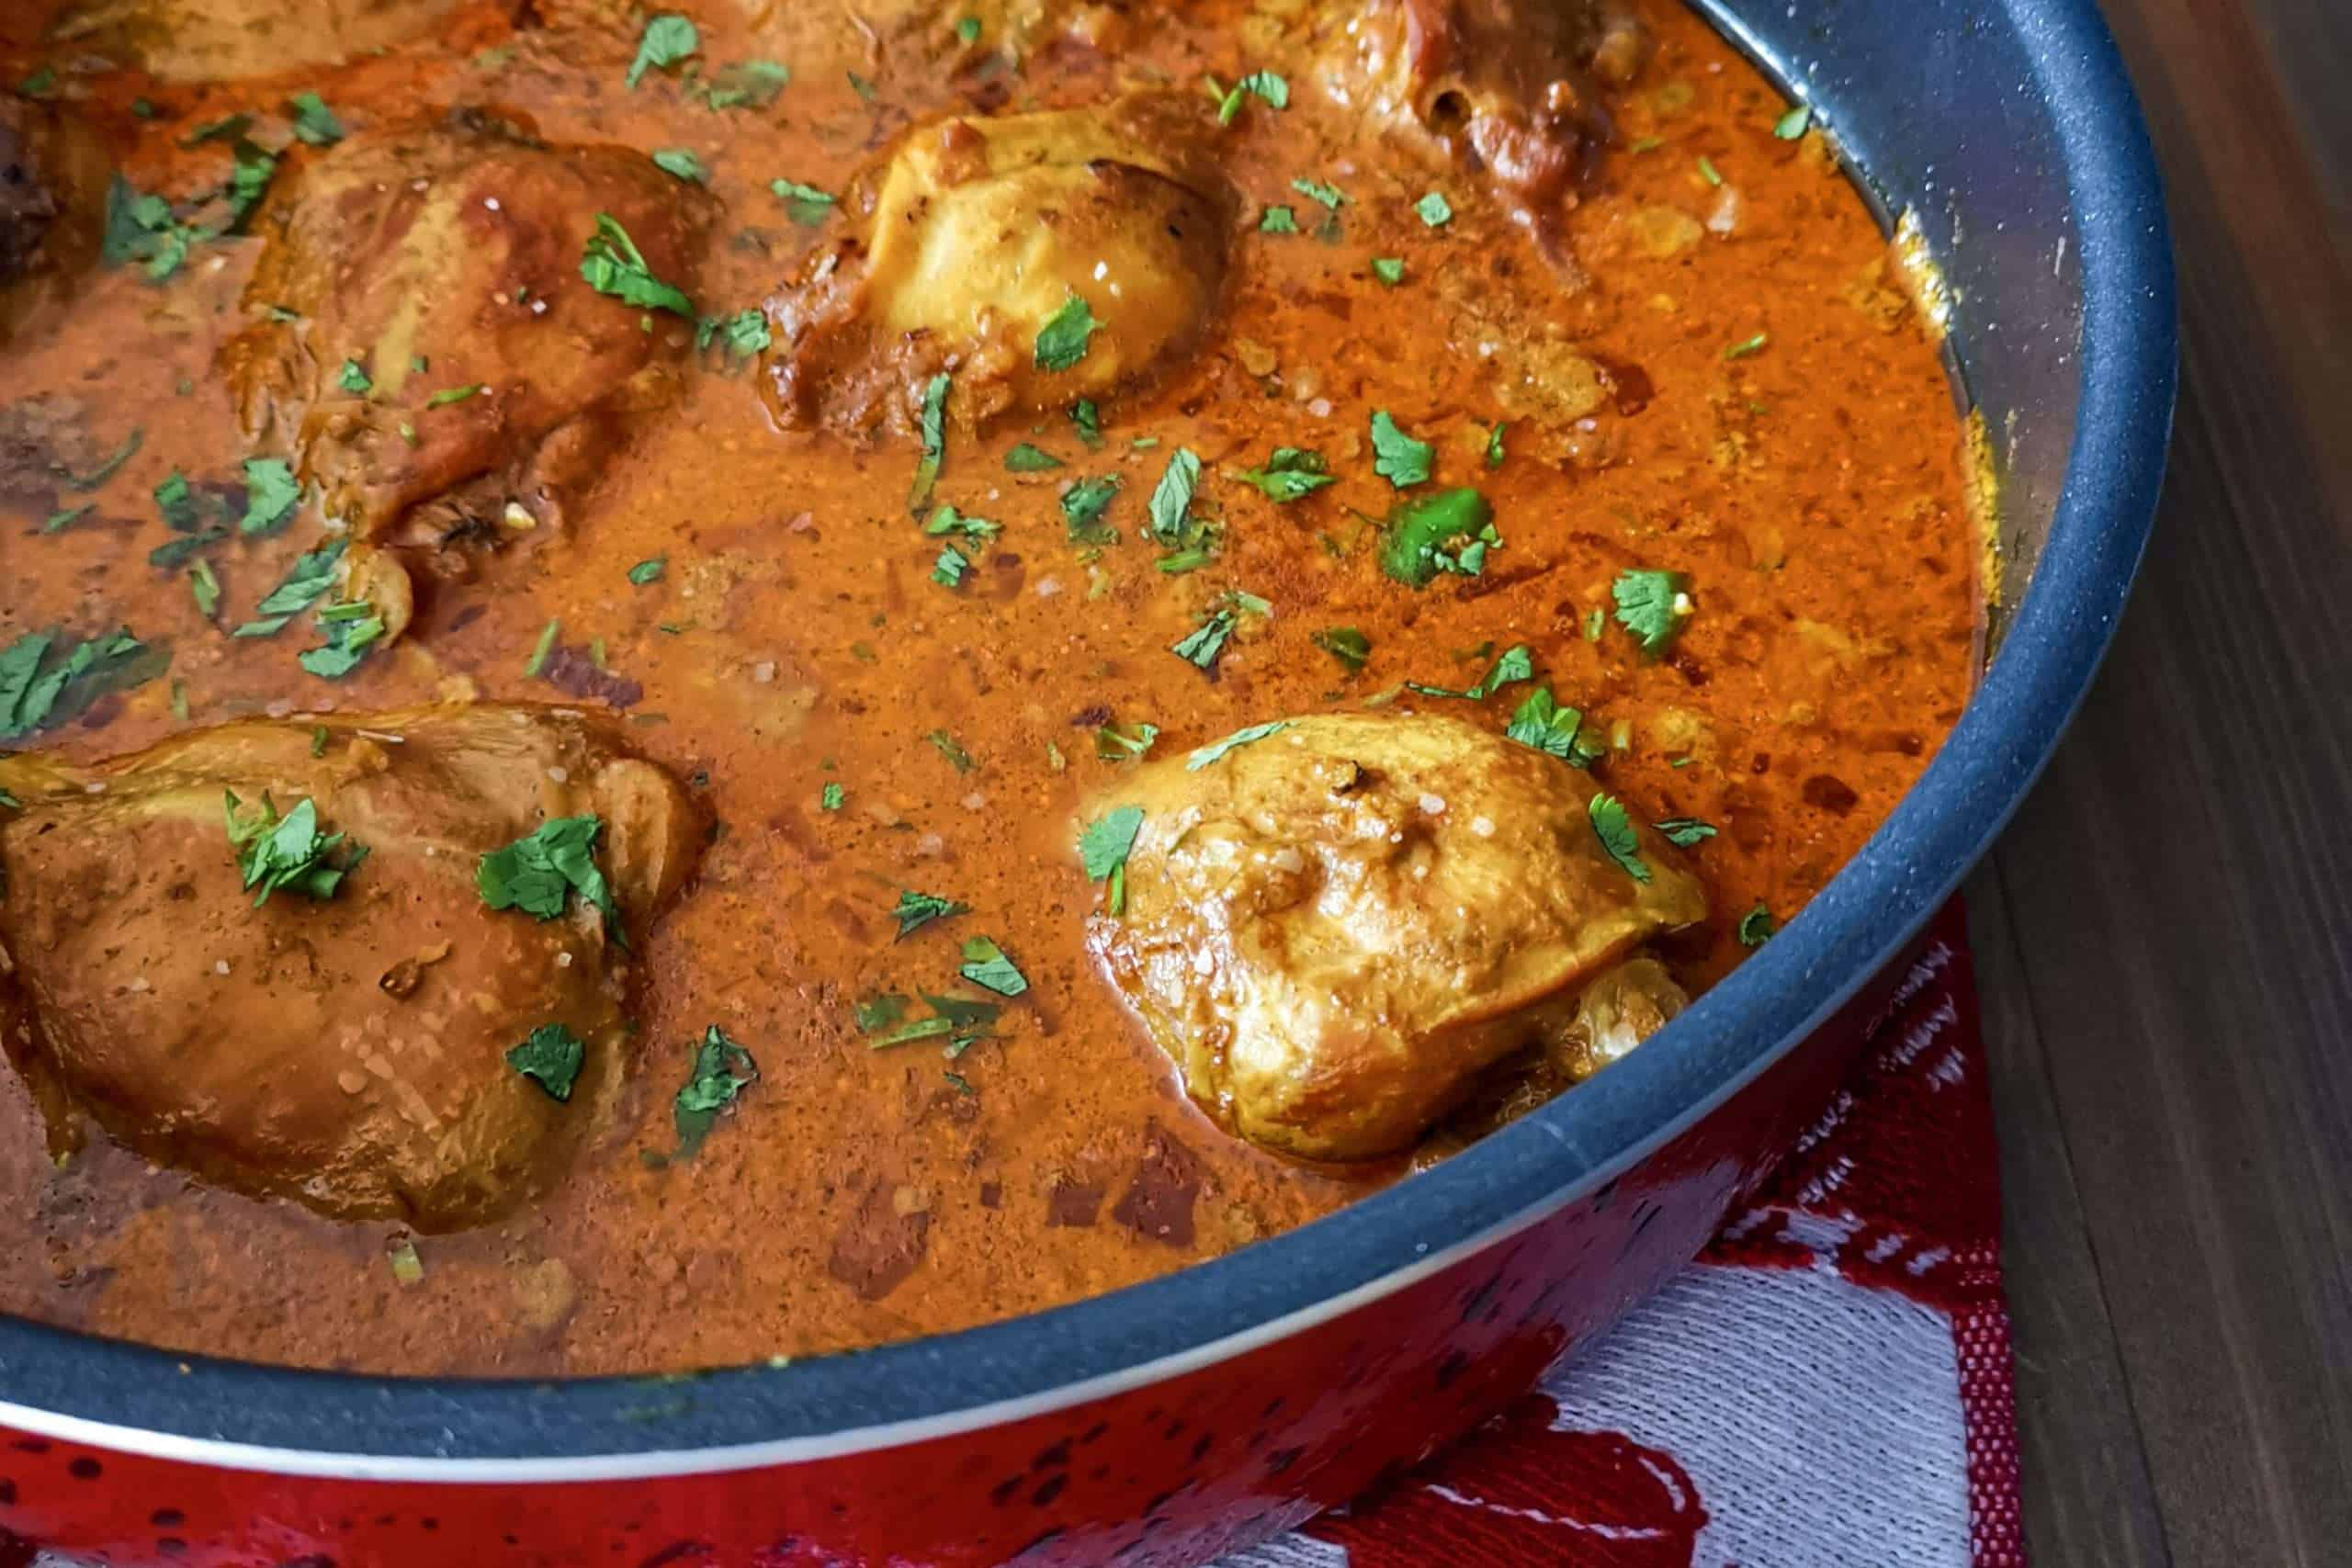 Keto friendly Indian chicken curry in a red pot